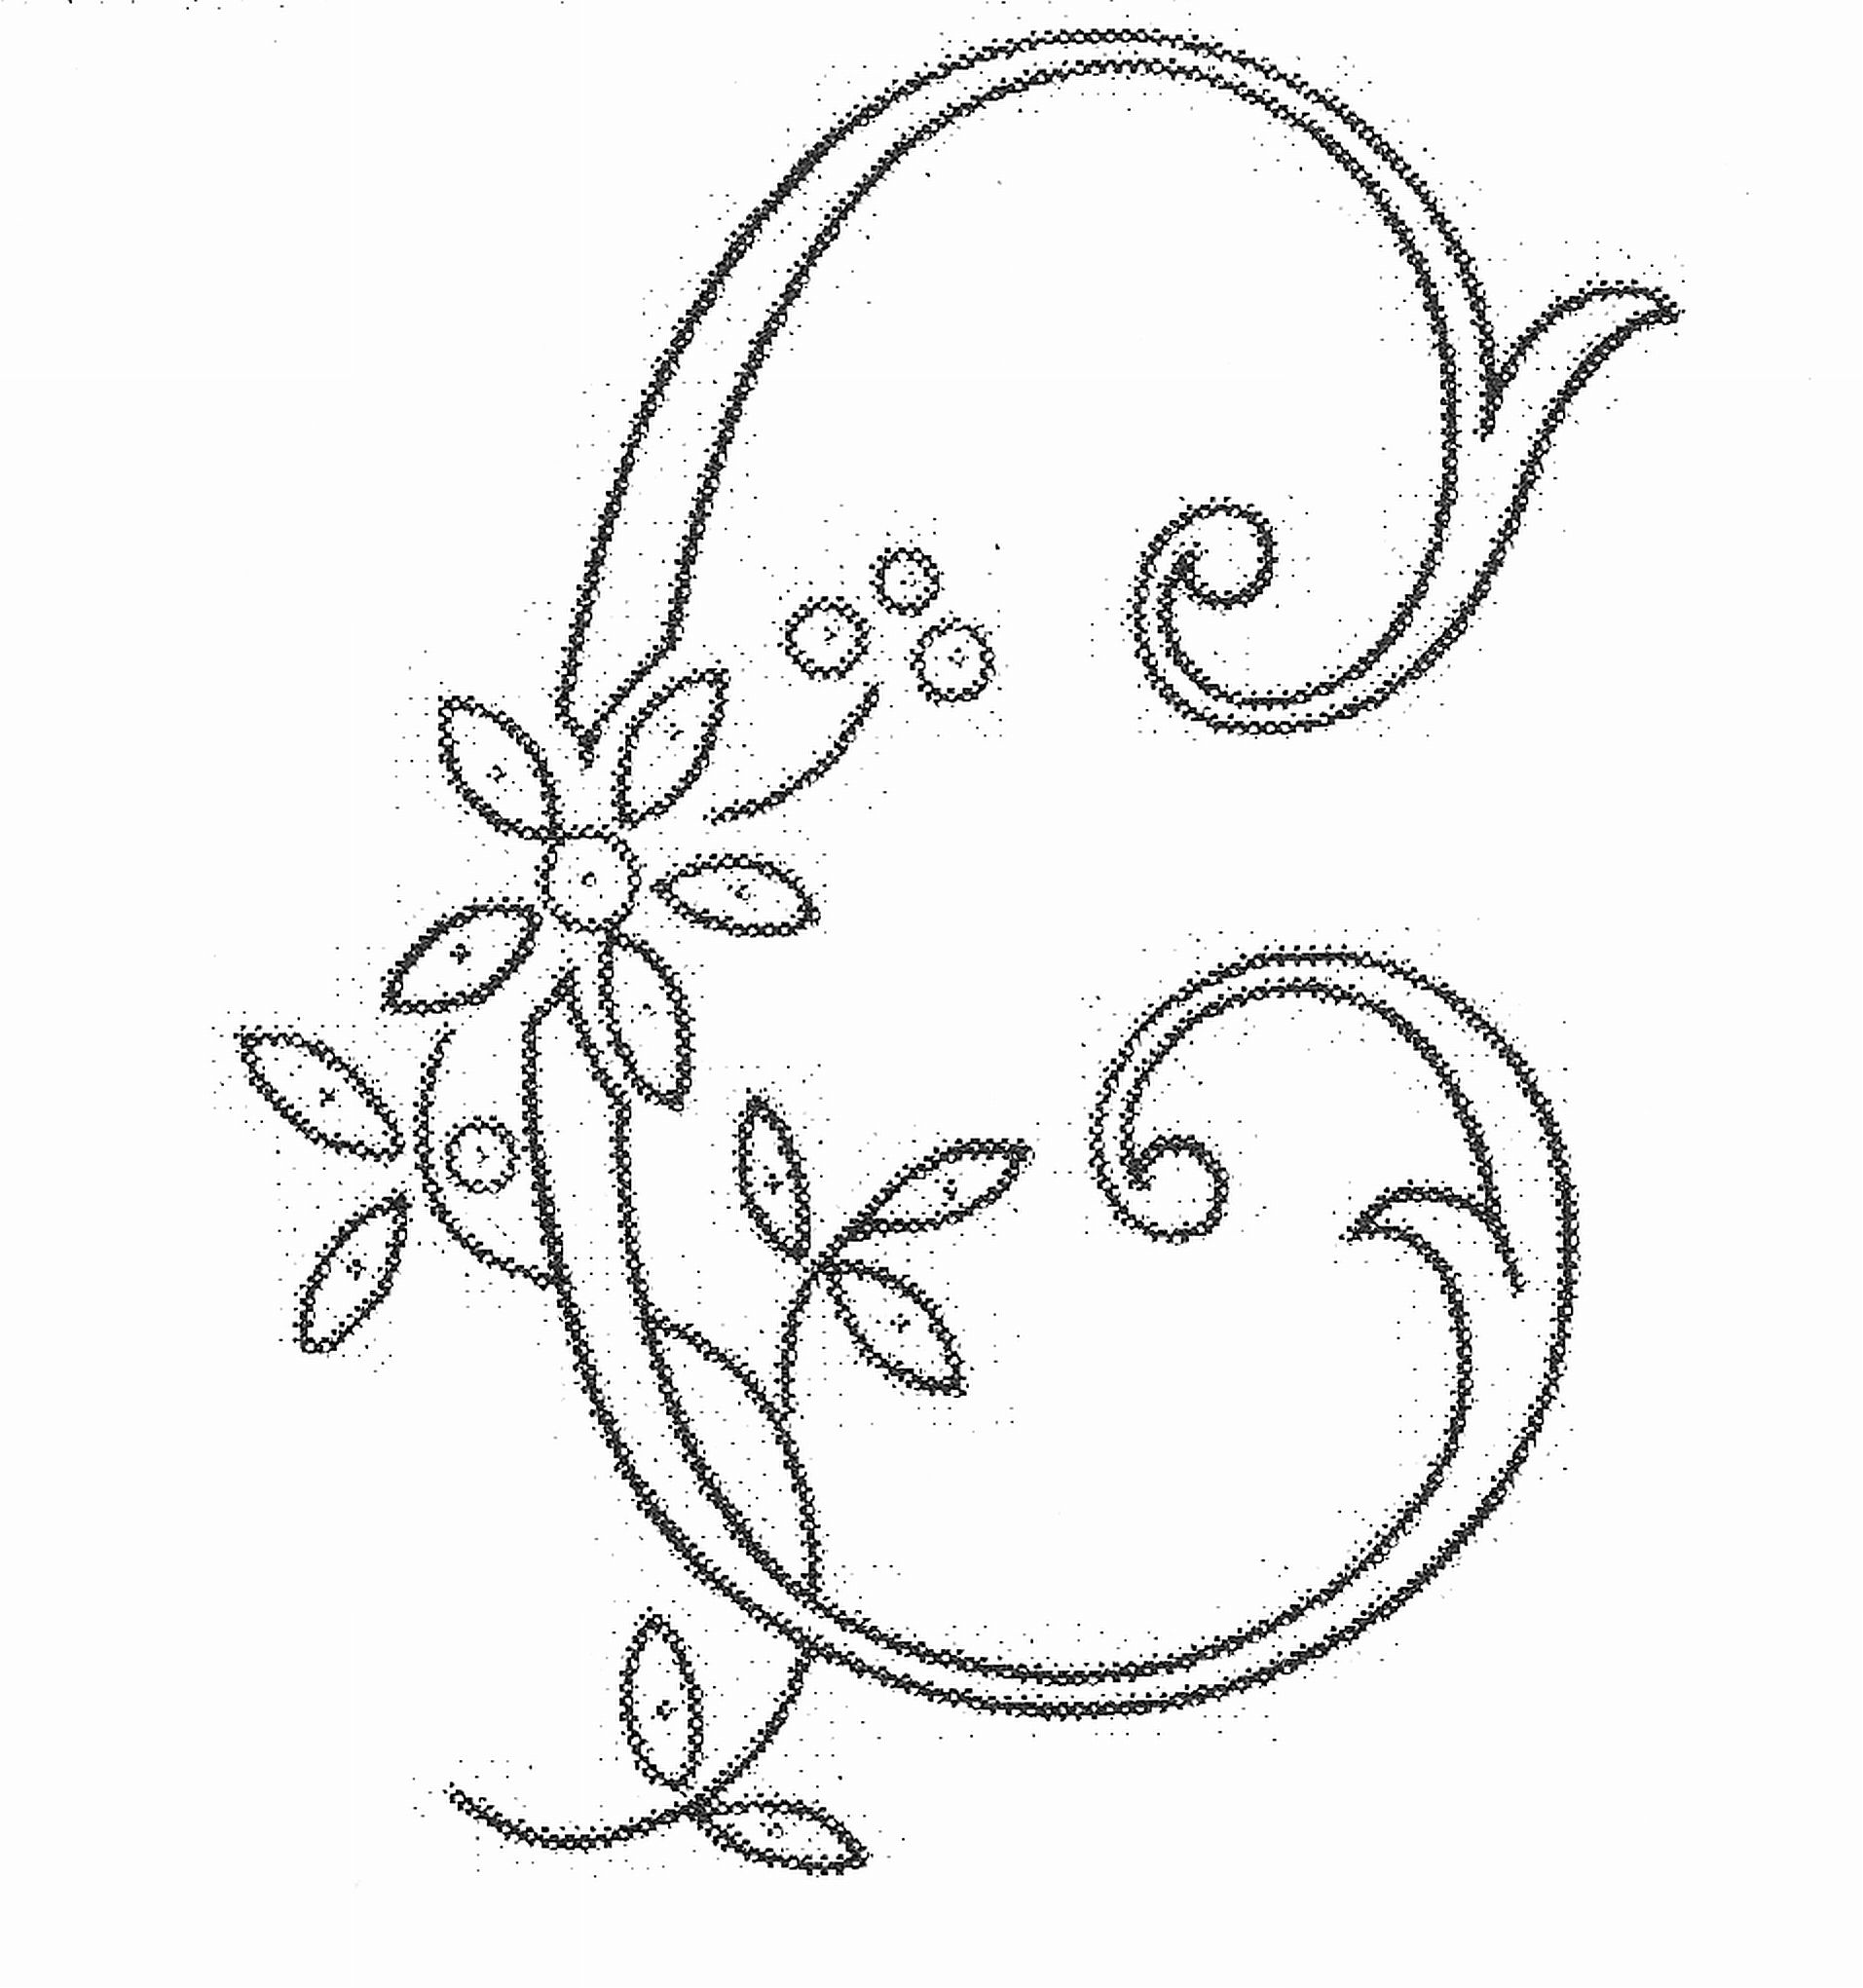 Fancy Letters Drawing At Getdrawings Com Free For Personal Use